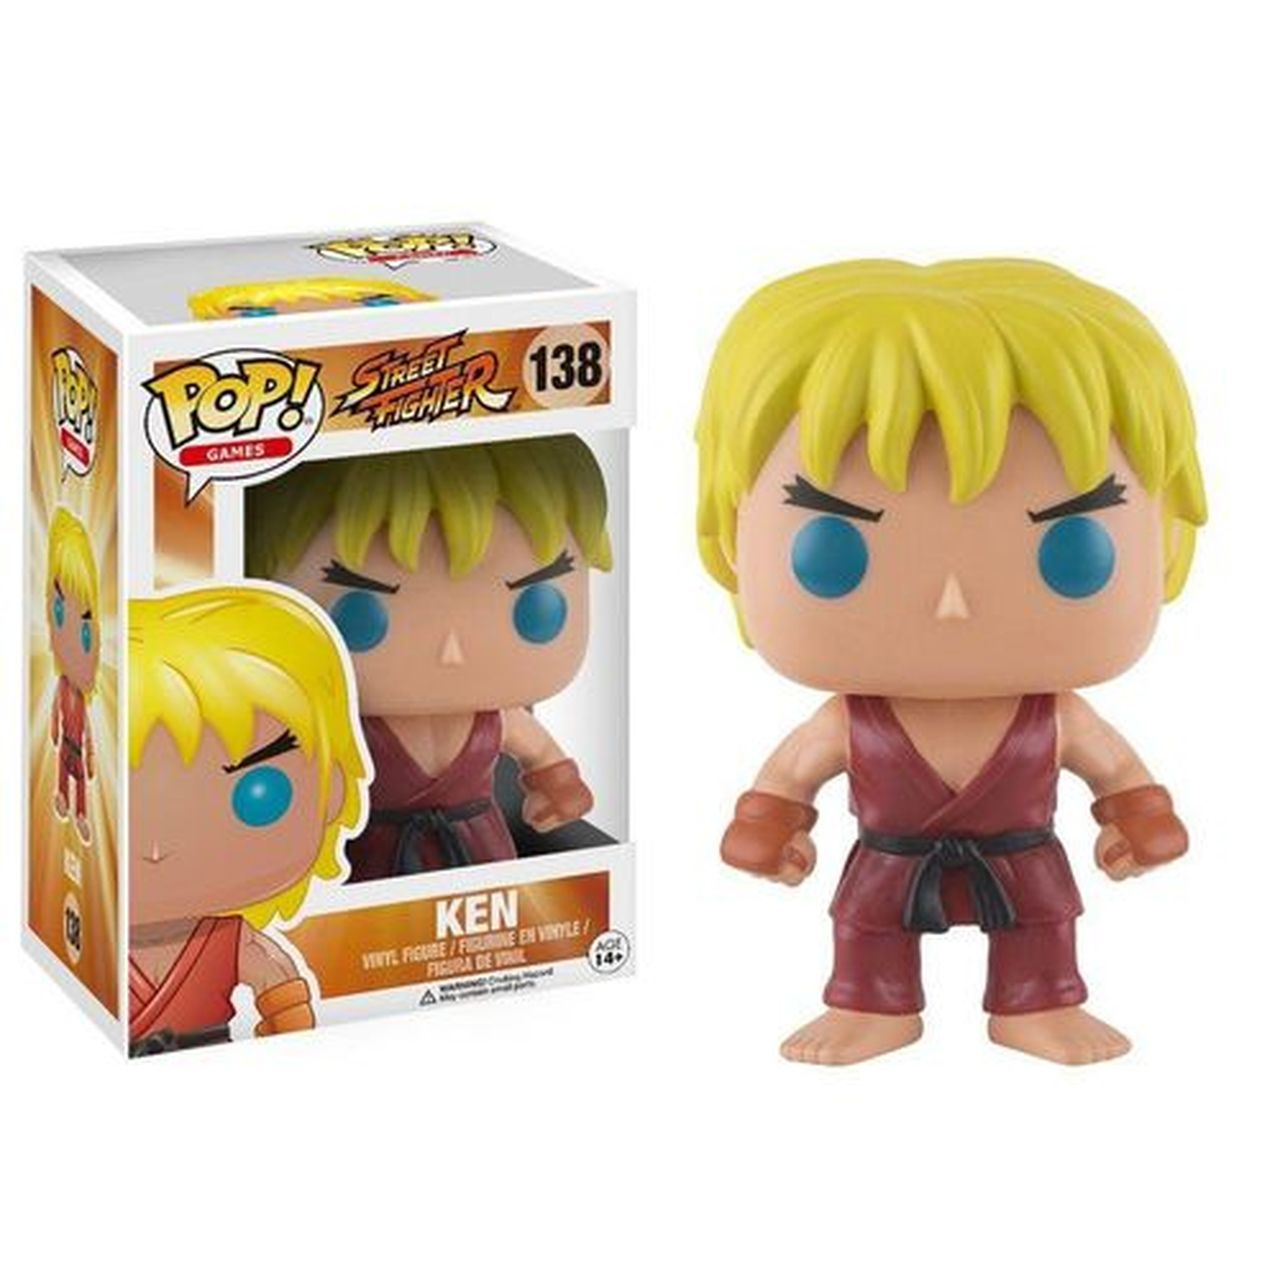 Funko Pop! Ken: Street Fighter #138 - Funko